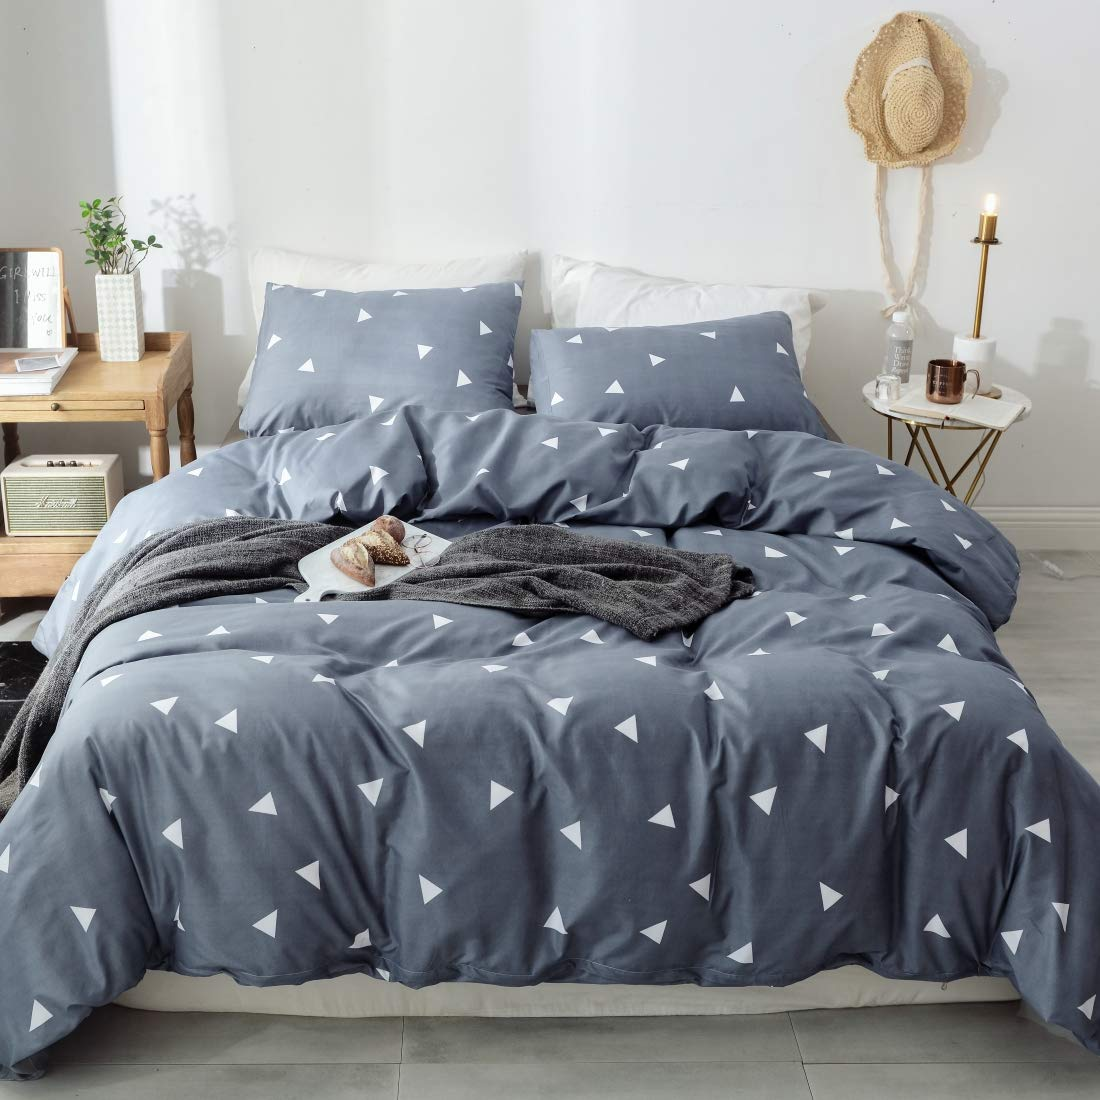 Moontail 3 Piece Duvet Cover Set Triangle Printing with Brushed Microfiber